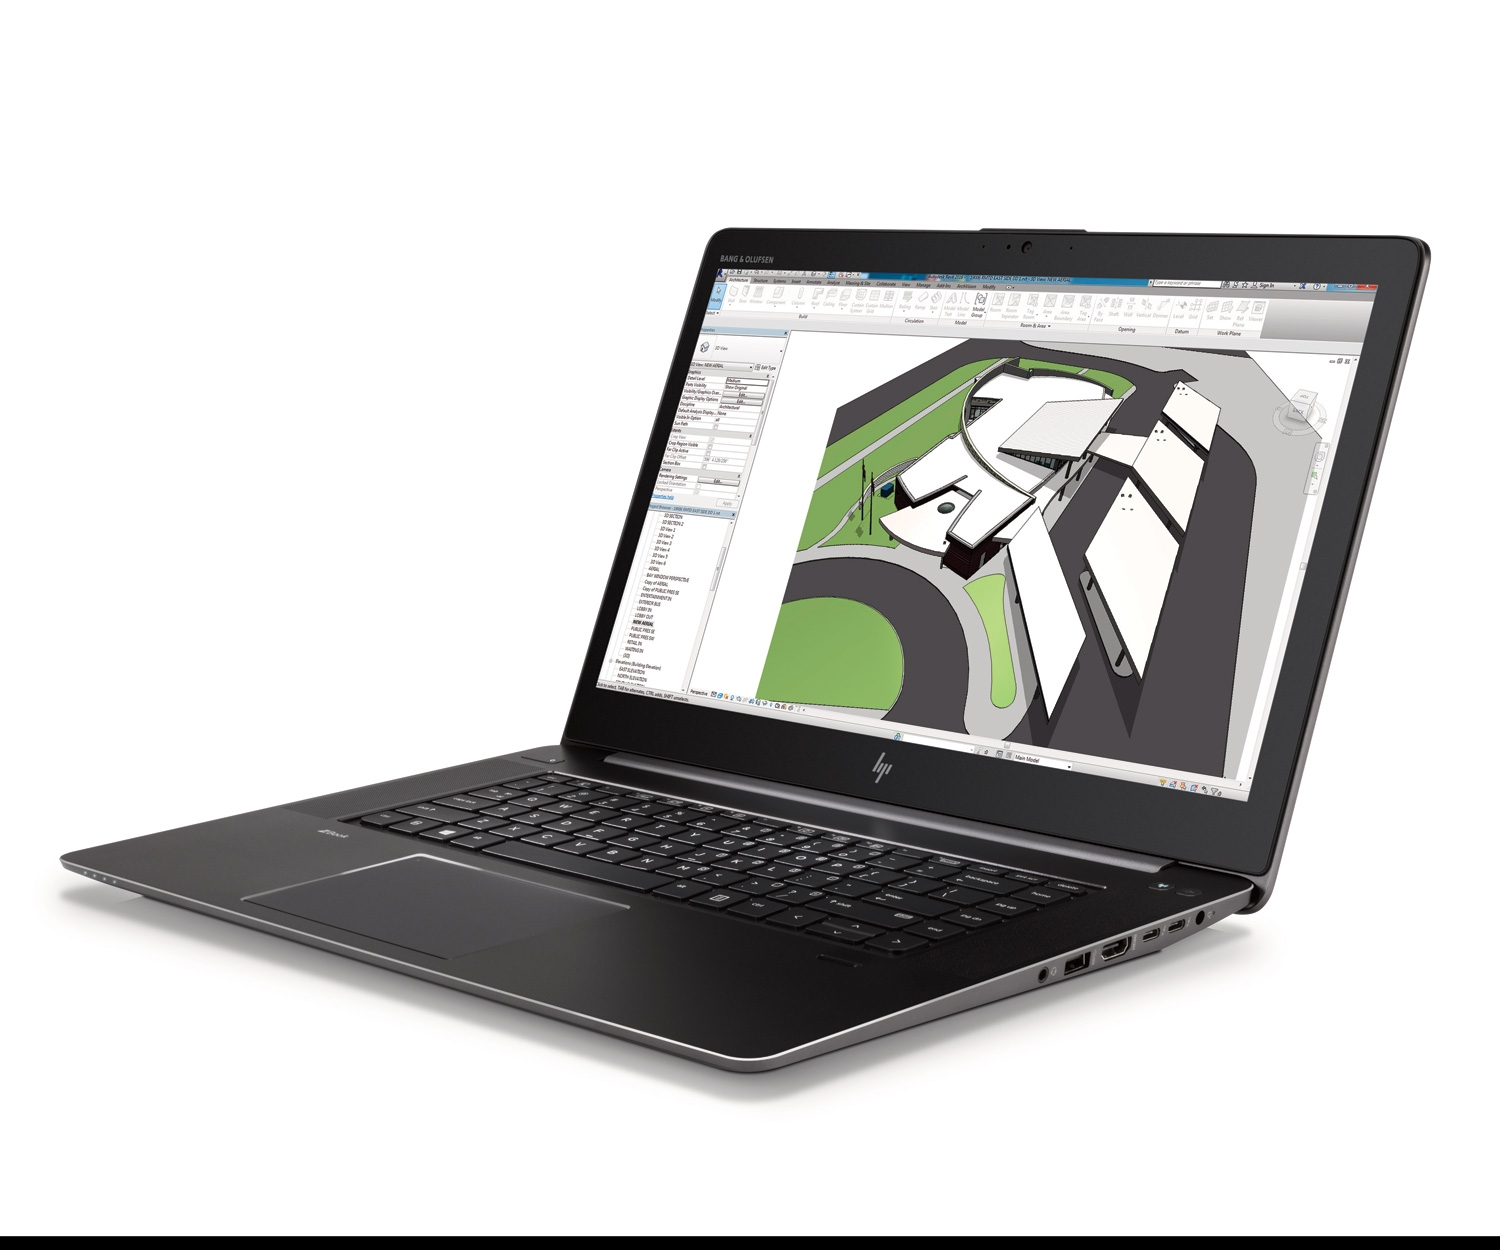 Hp Zbook G4 Laptops Are Faster Have Longer Battery Life